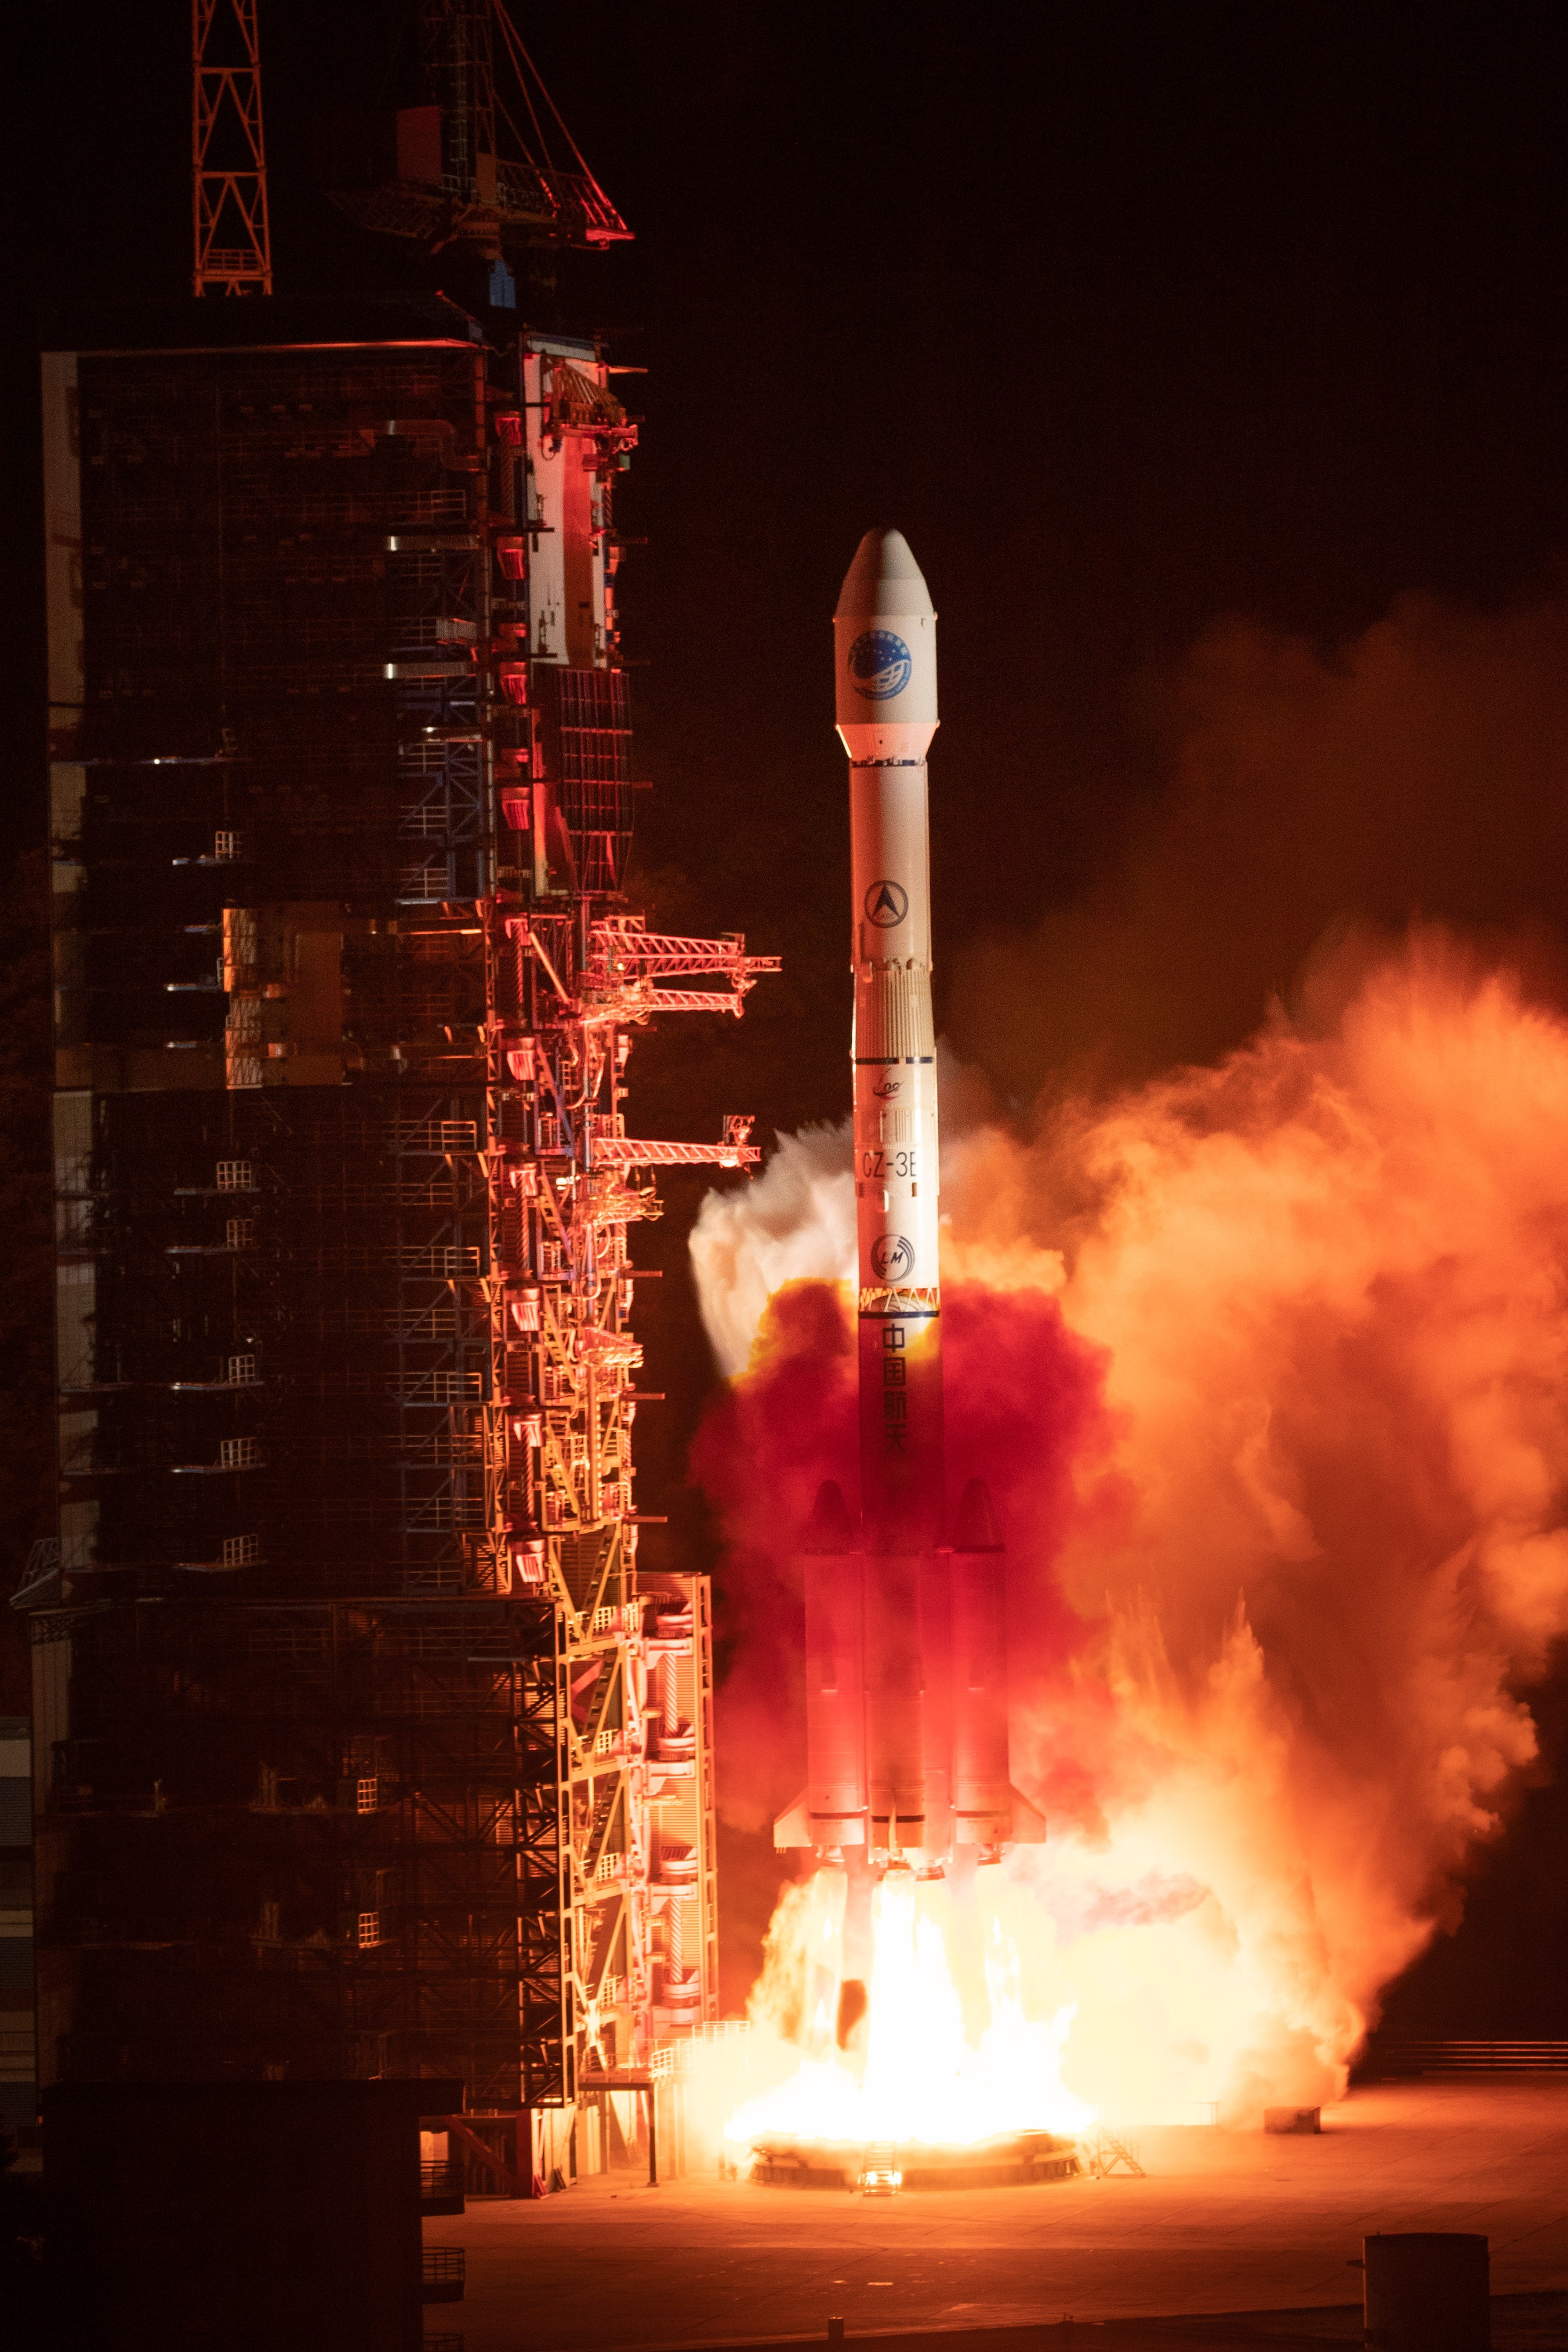 China adds new satellite to its Beidou network that aims to rival US